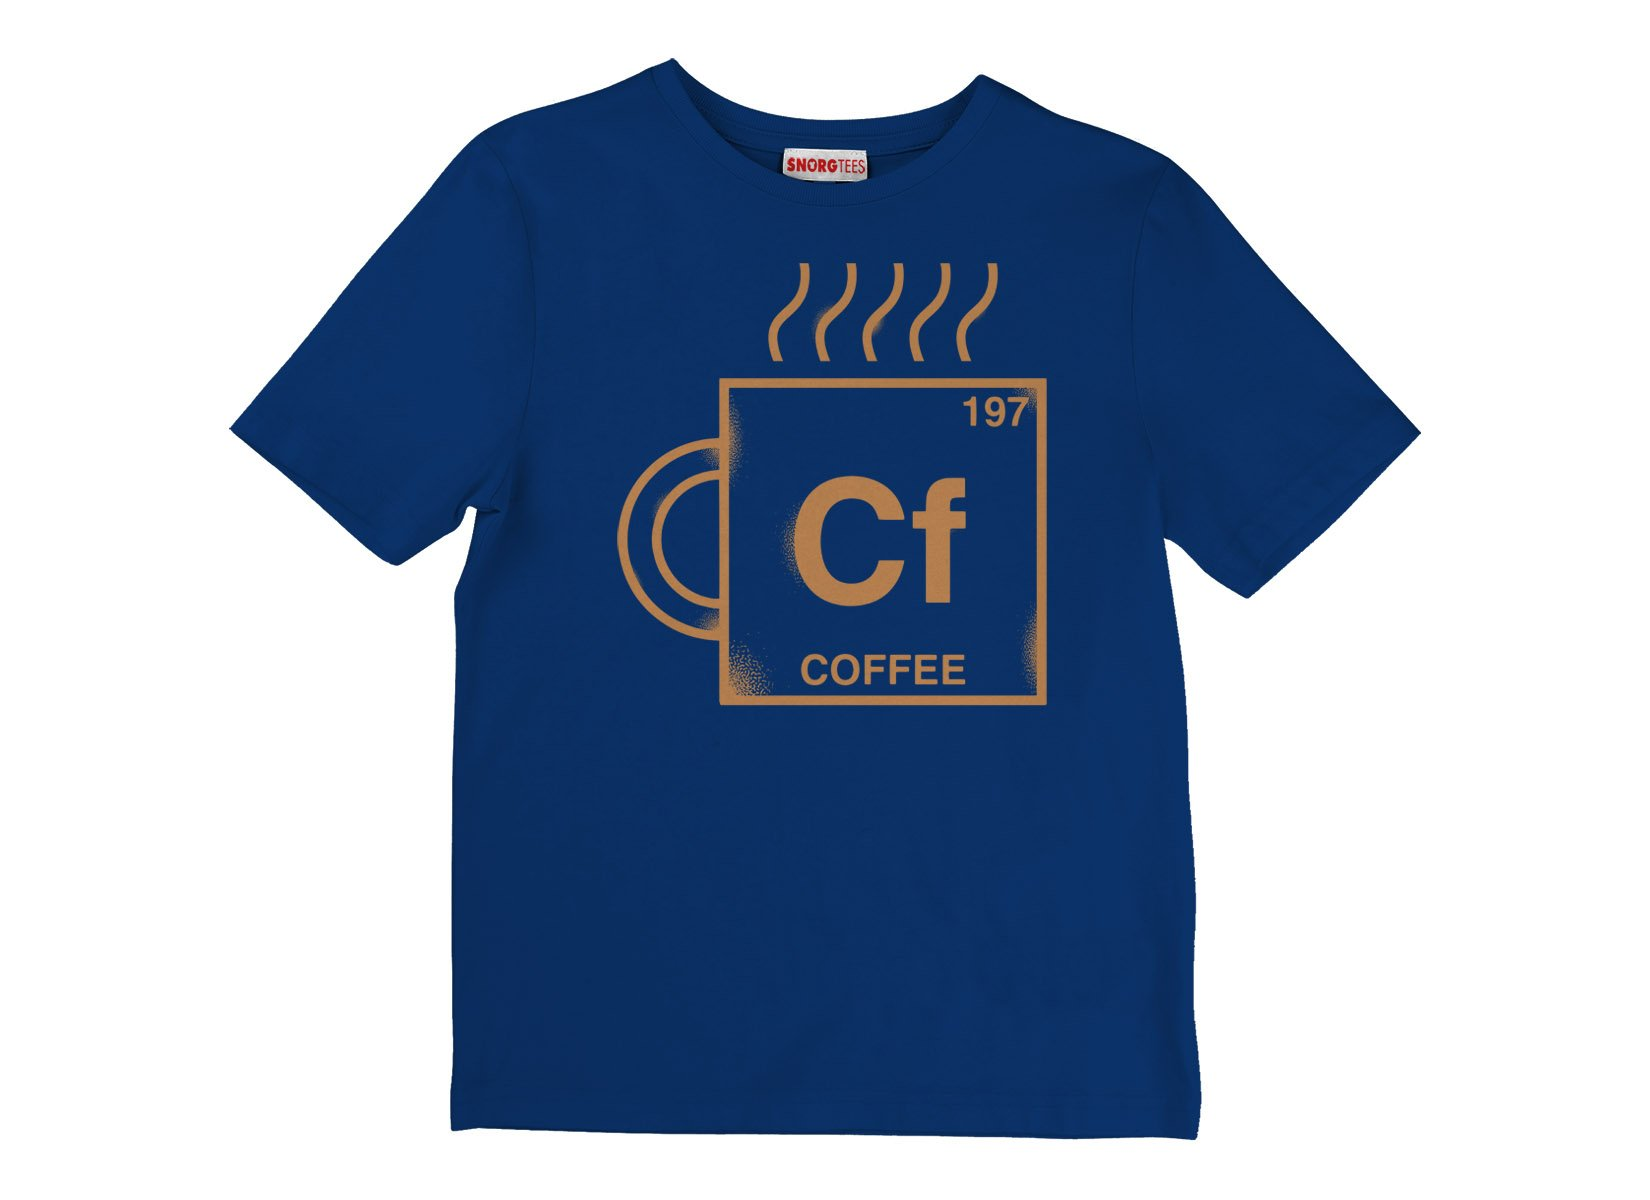 Coffee Element on Kids T-Shirt